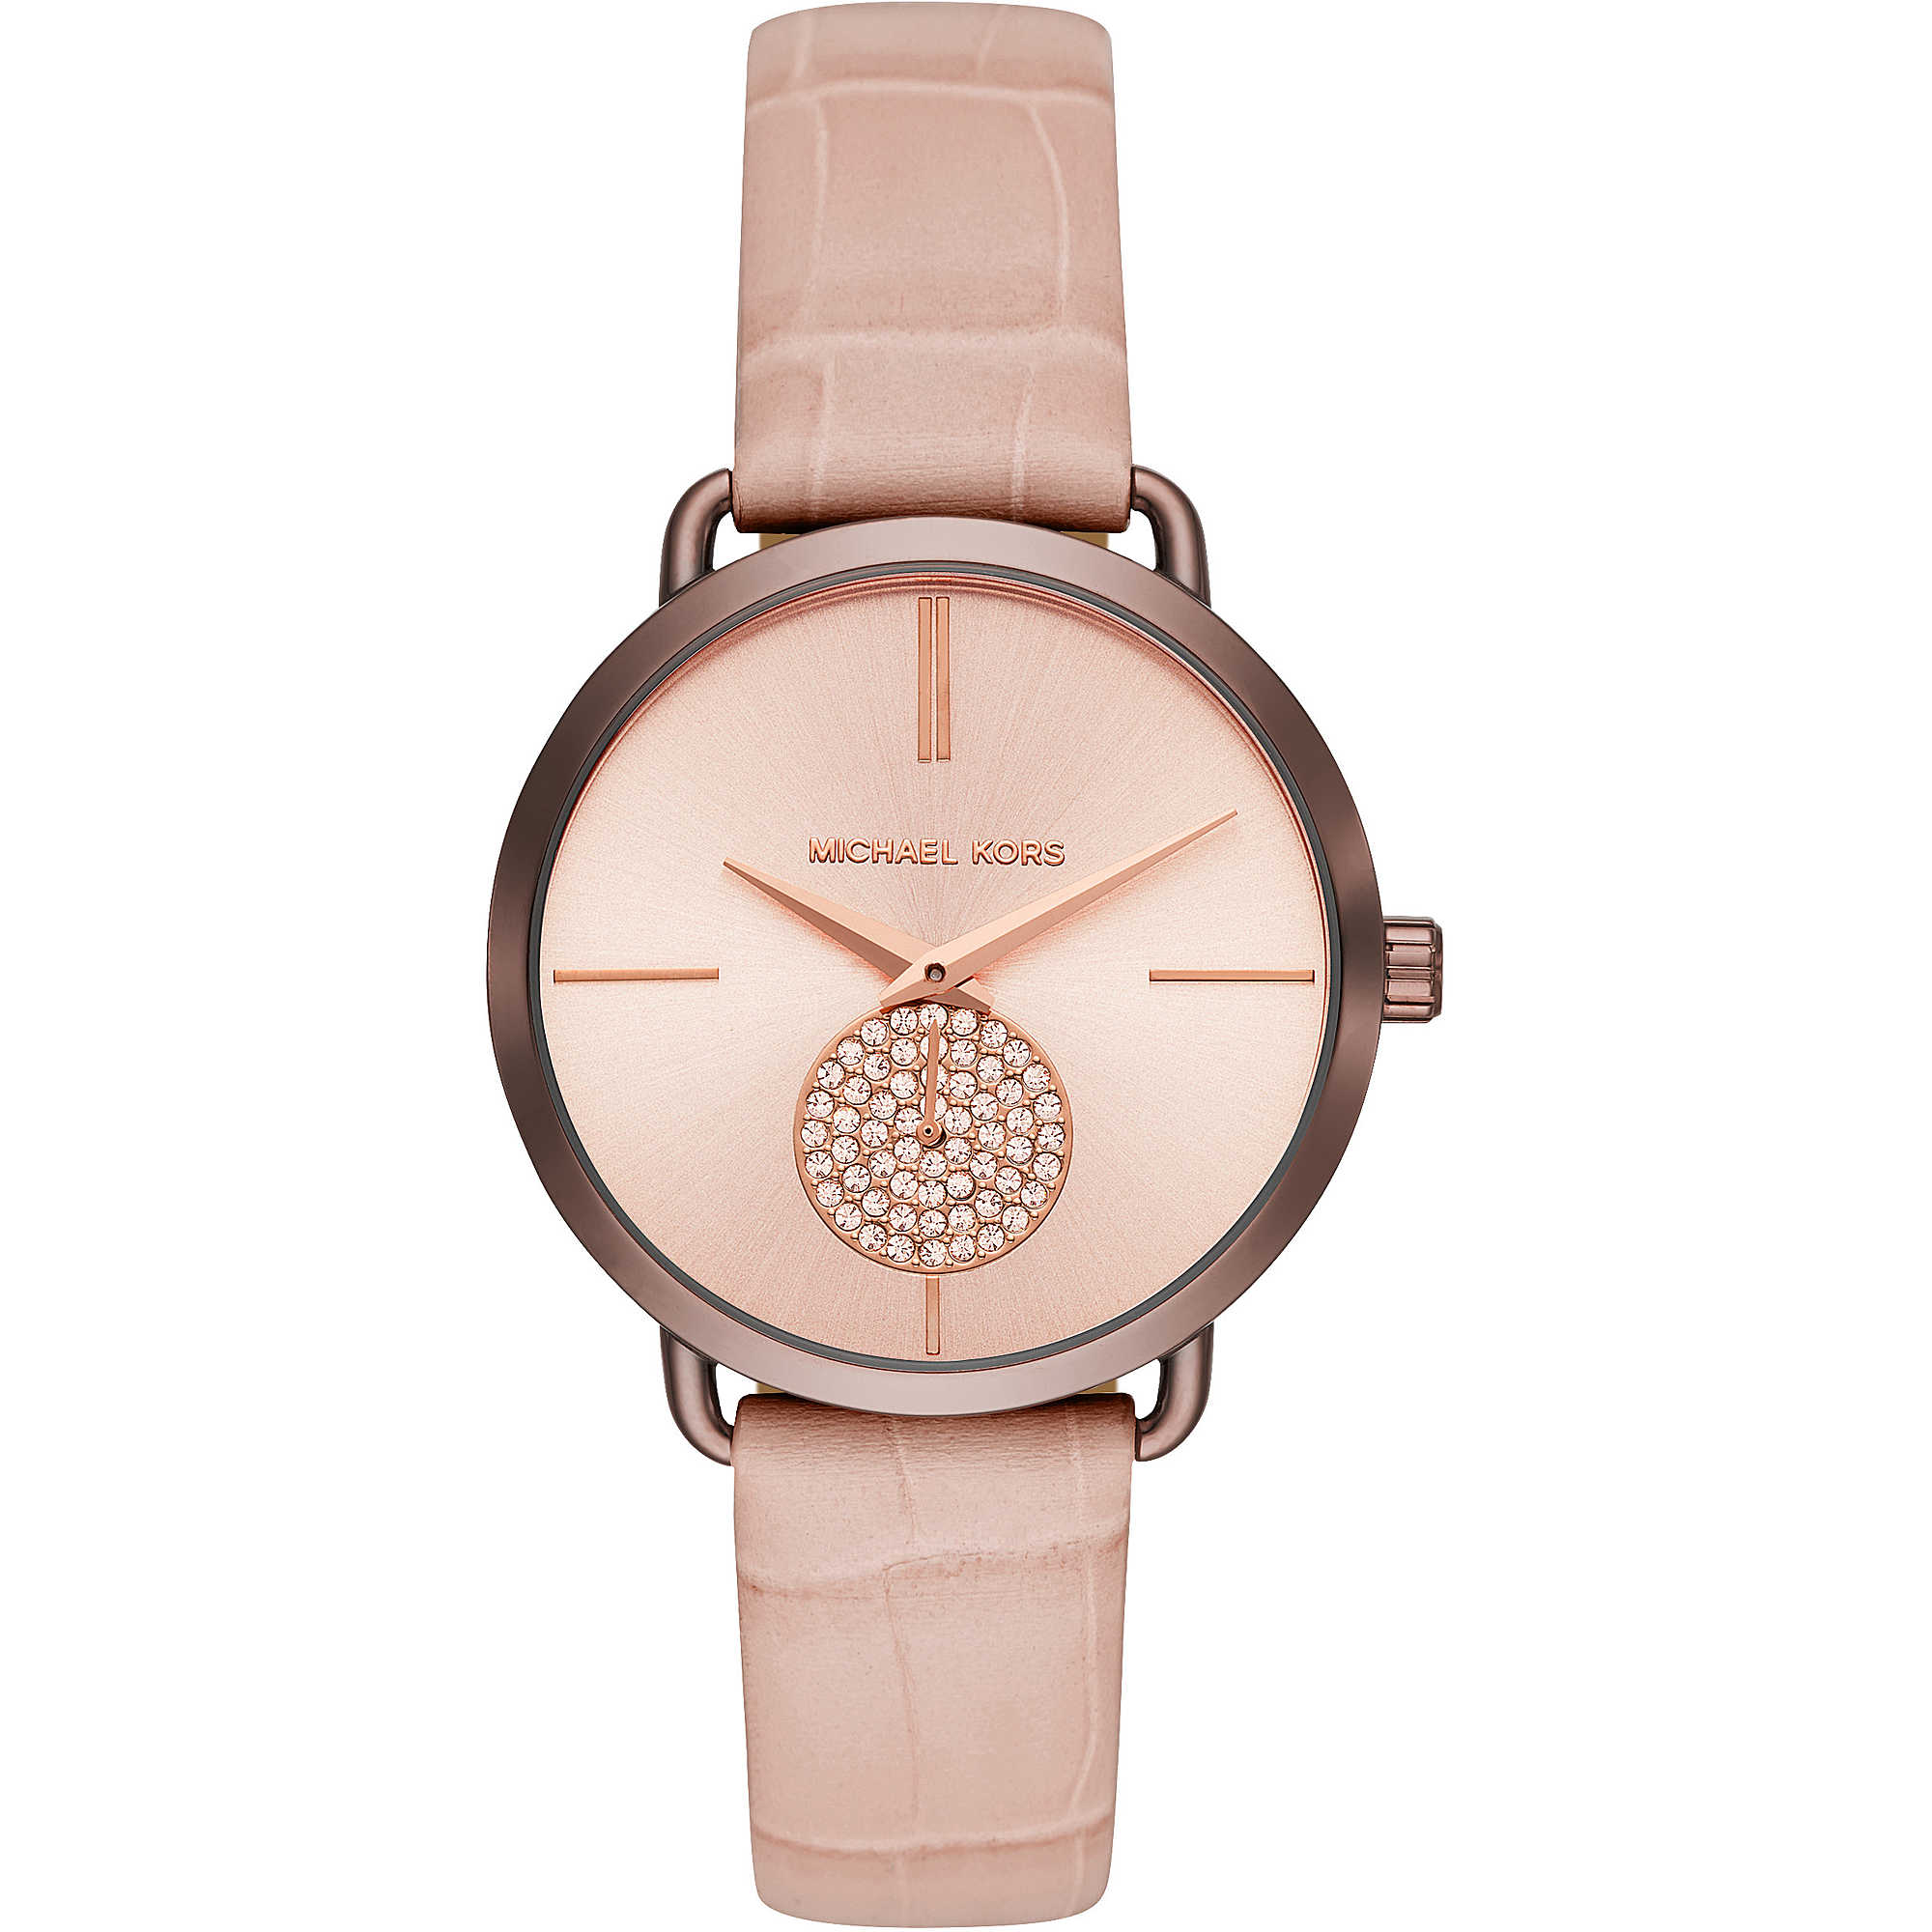 Michael-Kors-MK2721-Ladies-Portia-Sable-IP-and-Blush-Croco-Leather-Watch